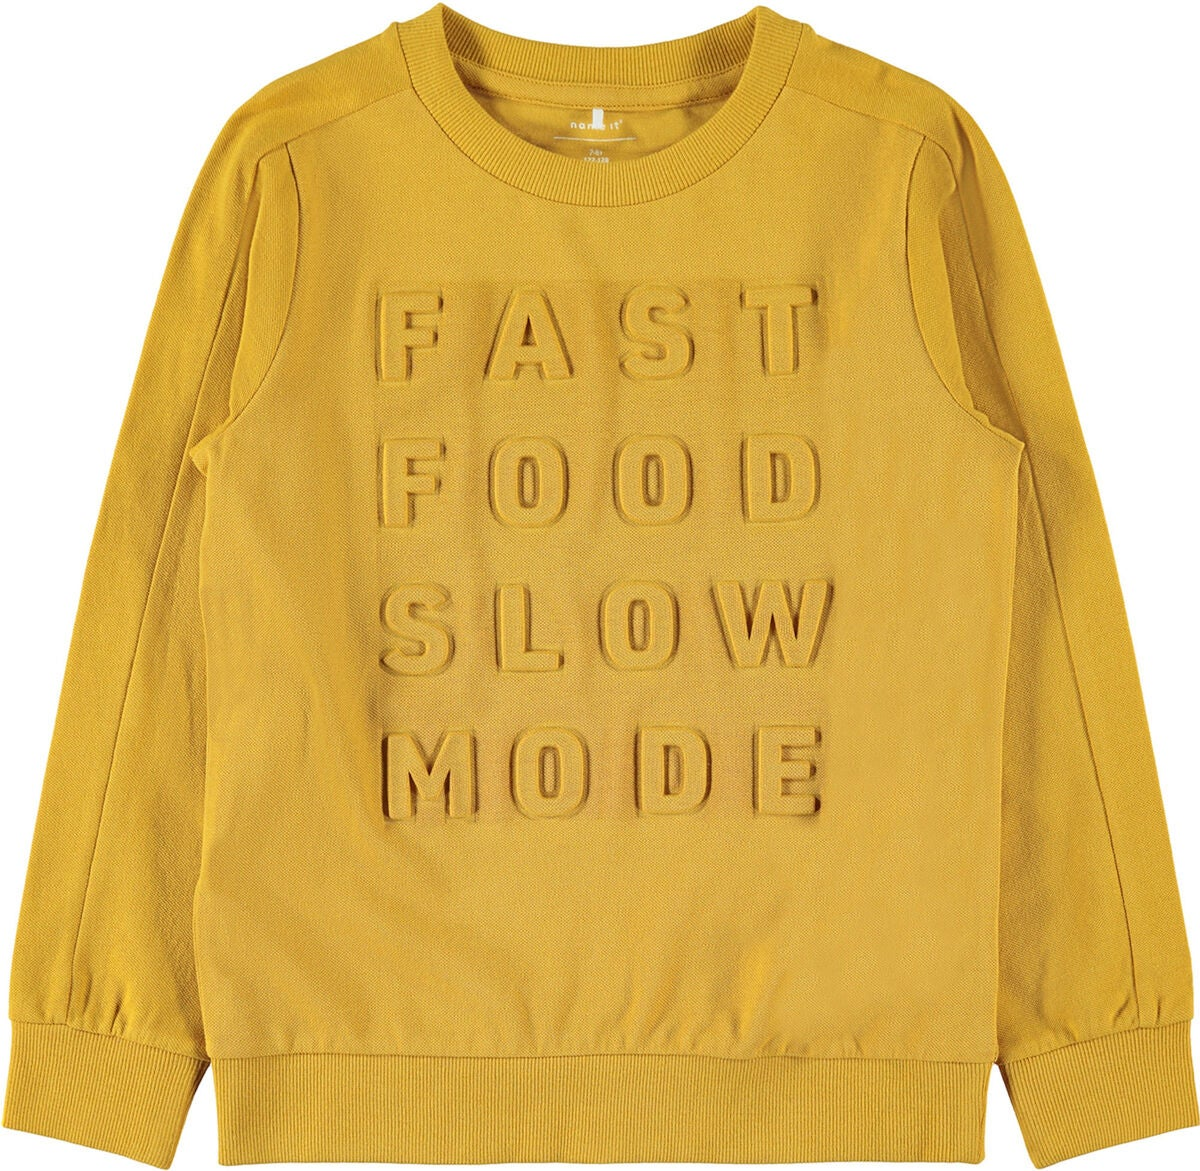 Name it Oli Pullover, Amber Gold